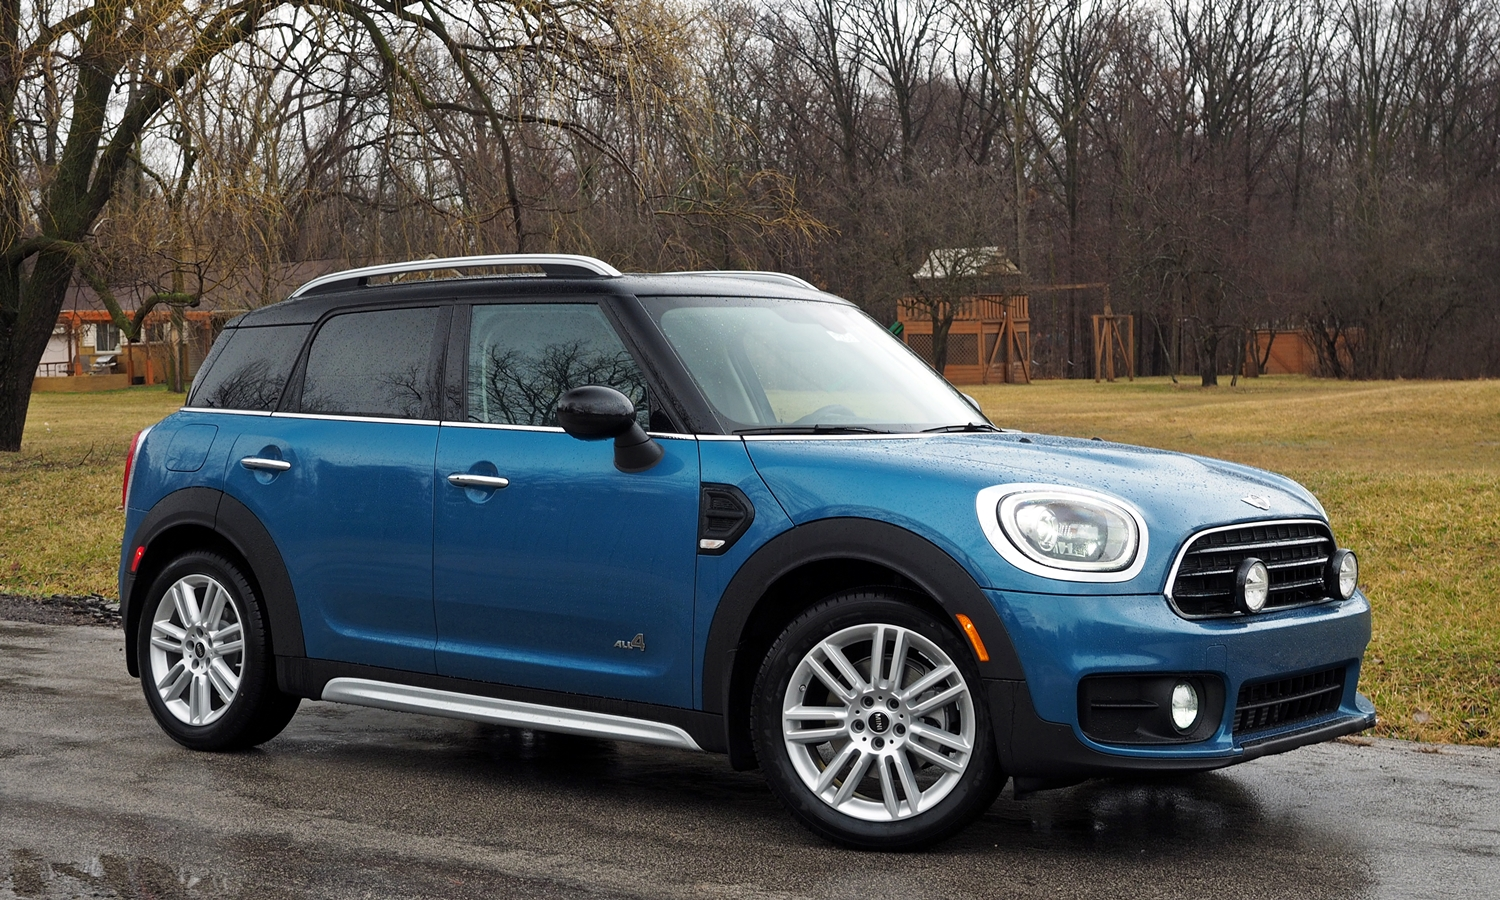 Kia Soul Photos: 2017 Mini Countryman front quarter view